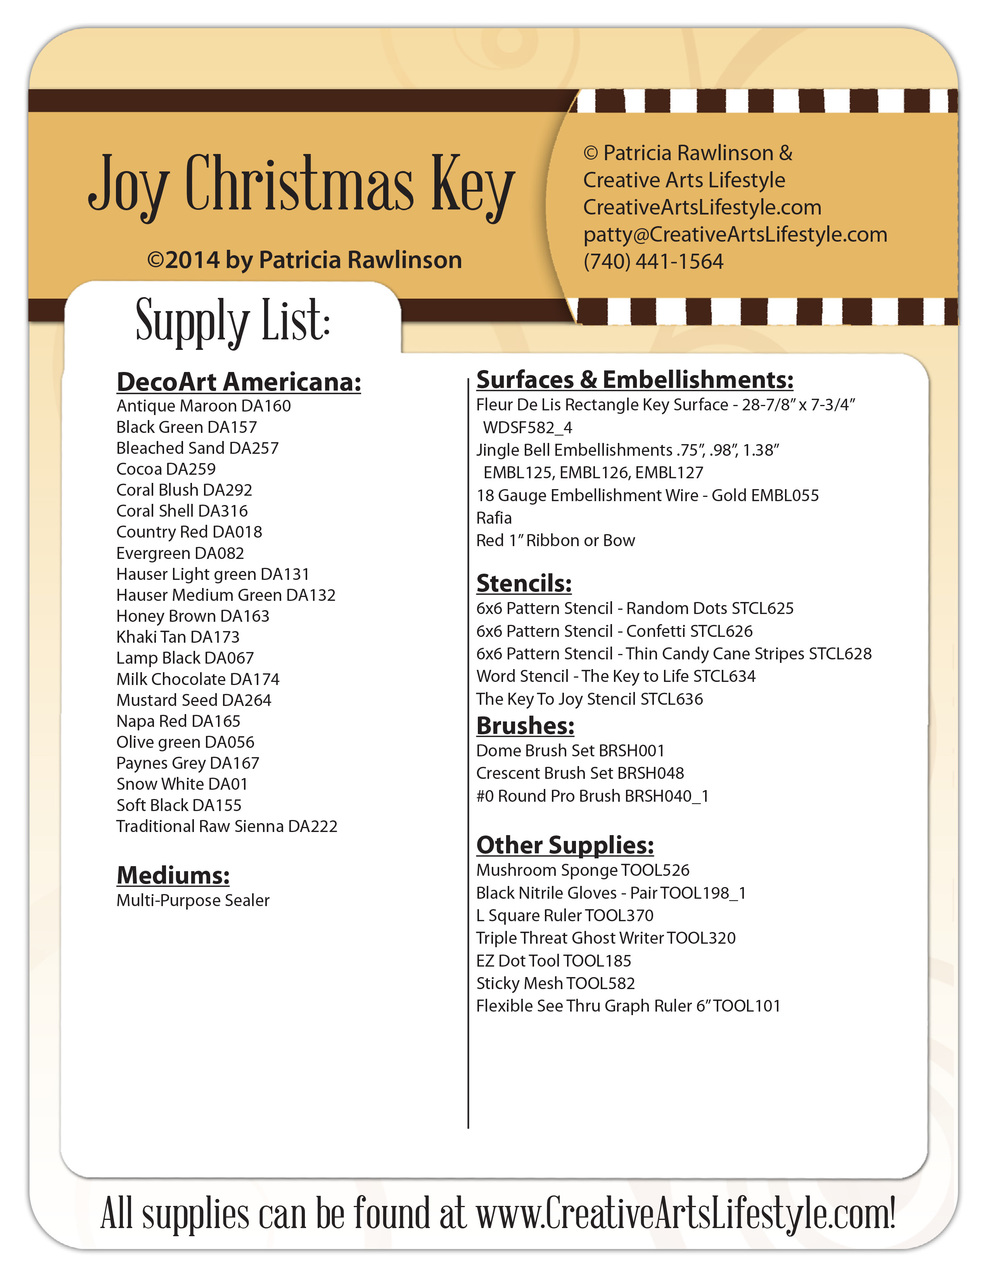 Joy Christmas Key DVD + E-Packet